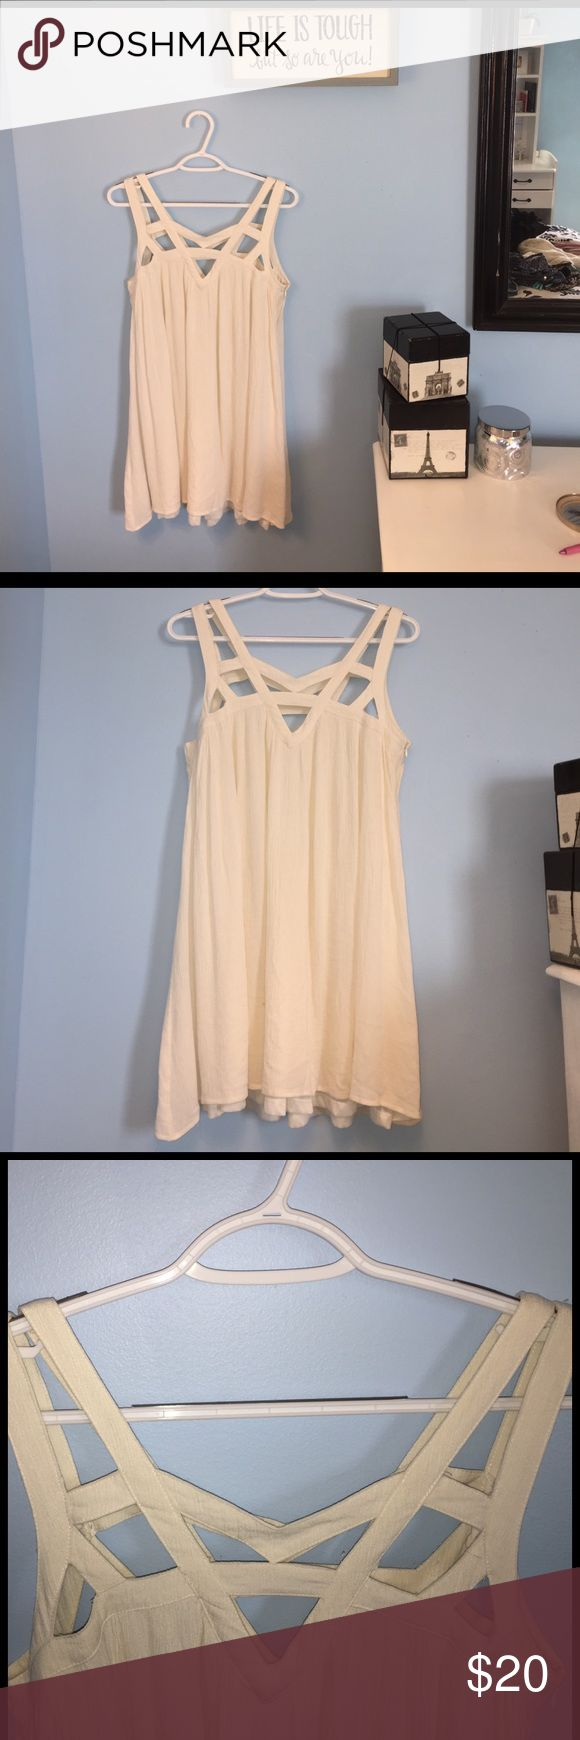 Adorable Flowy spring dress! 🌸🌷🍃 Beautiful detailing at the top. This is a Cream/Beige colored dress and is perfect for this upcoming spring! Only been worn once for a graduation. I found it was a little too short for me.. I am pretty very tall, lol. Double Zero Dresses Mini